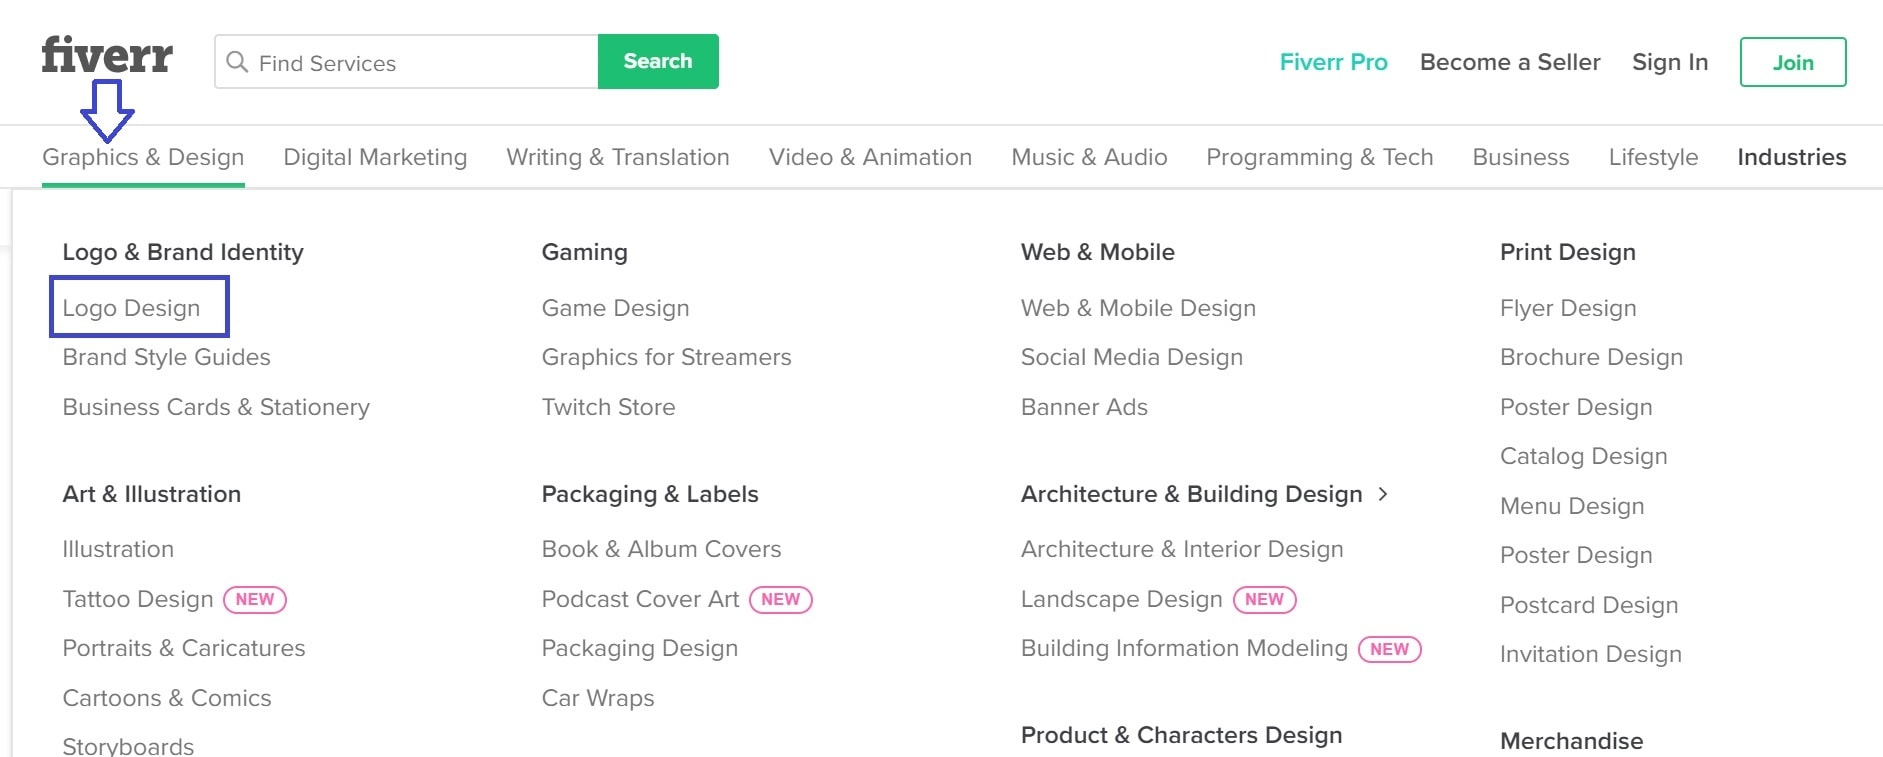 Fiverr screenshot - Graphics and Design menu